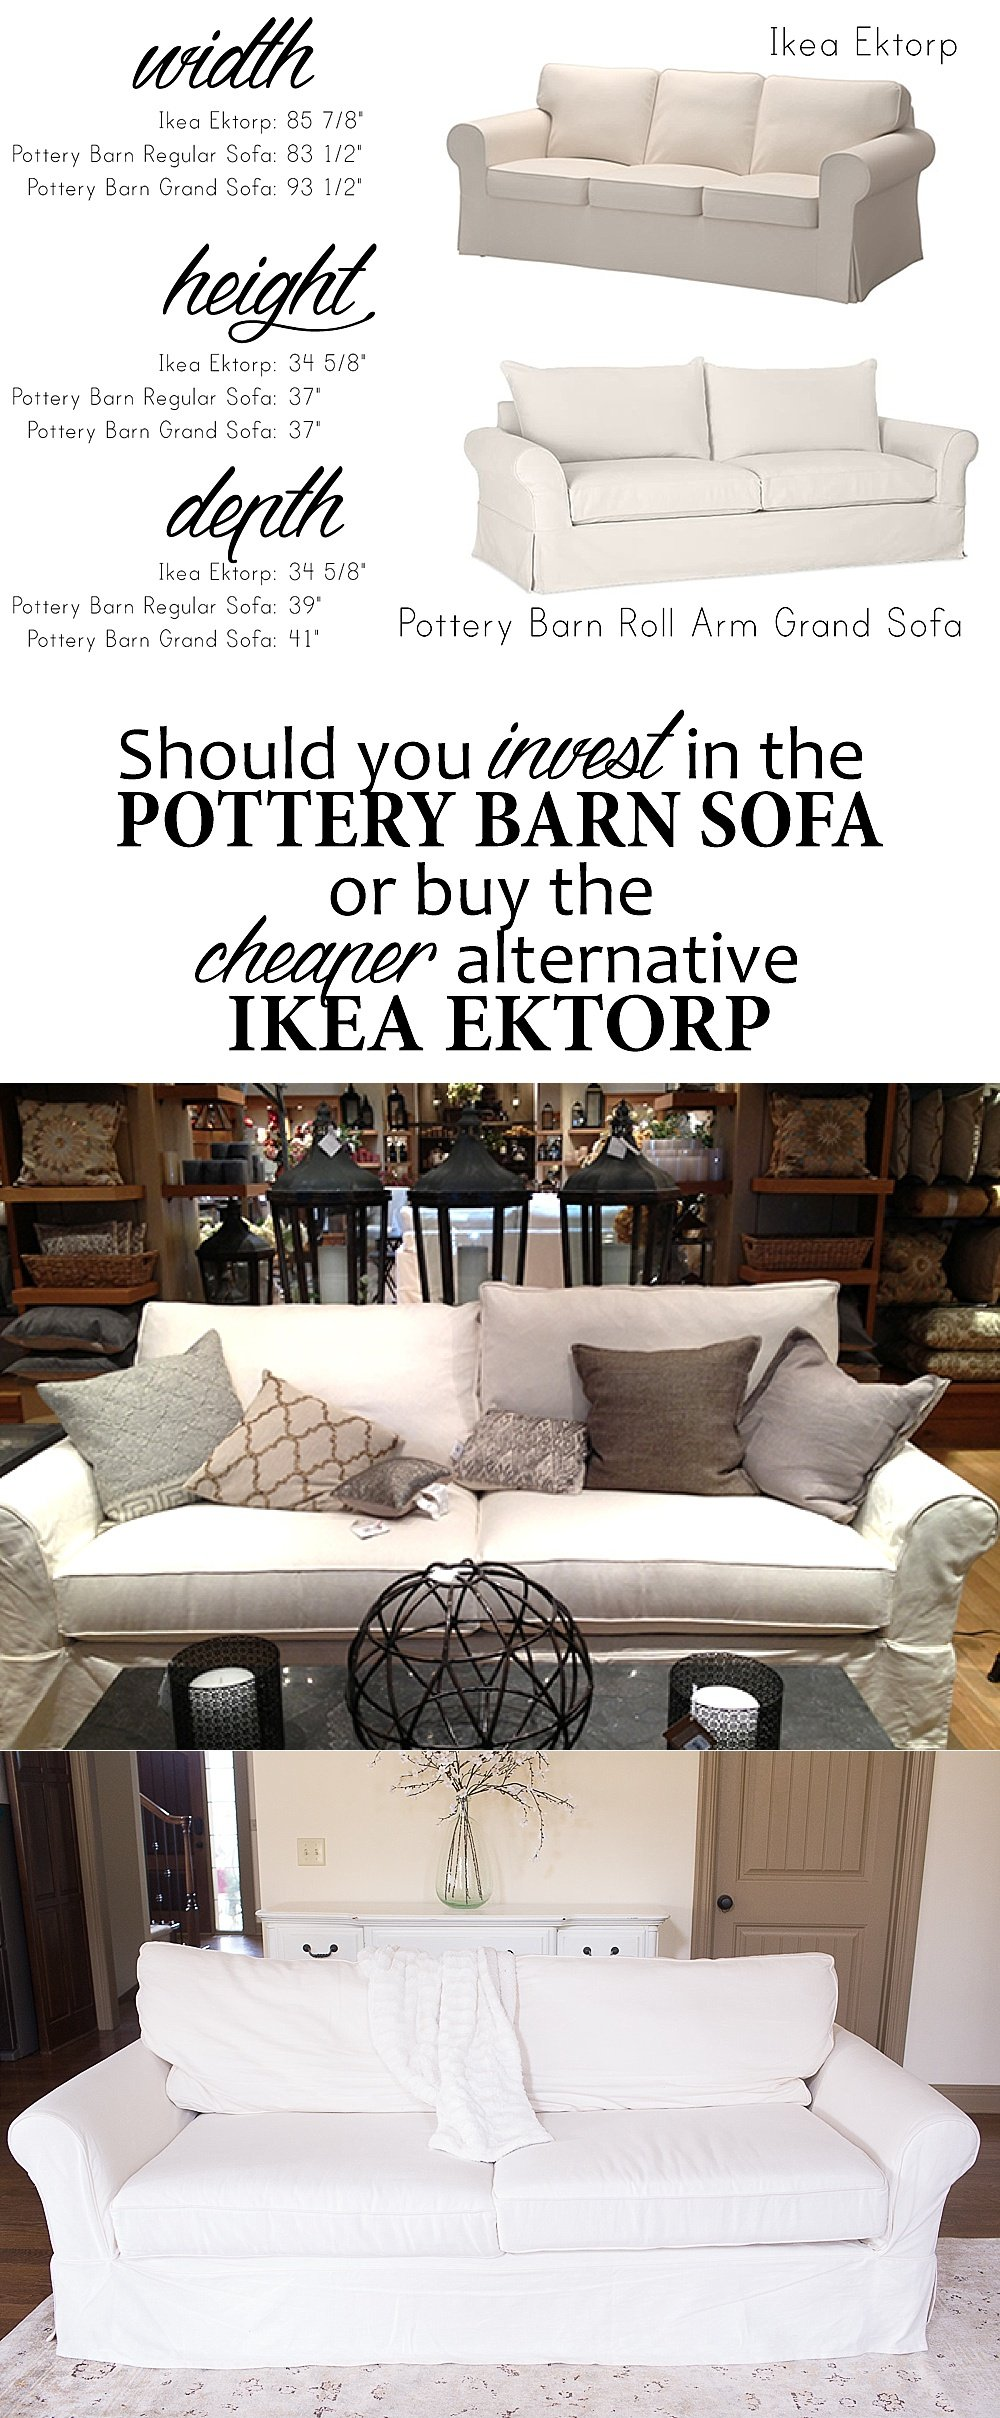 Ikea versus Pottery Barn Sofa how to choose a couch and sofa | 10 Tips on How to Choose a Couch: Pottery Barn versus Ikea Sofa featured by top US lifestyle blogger, Sengerson